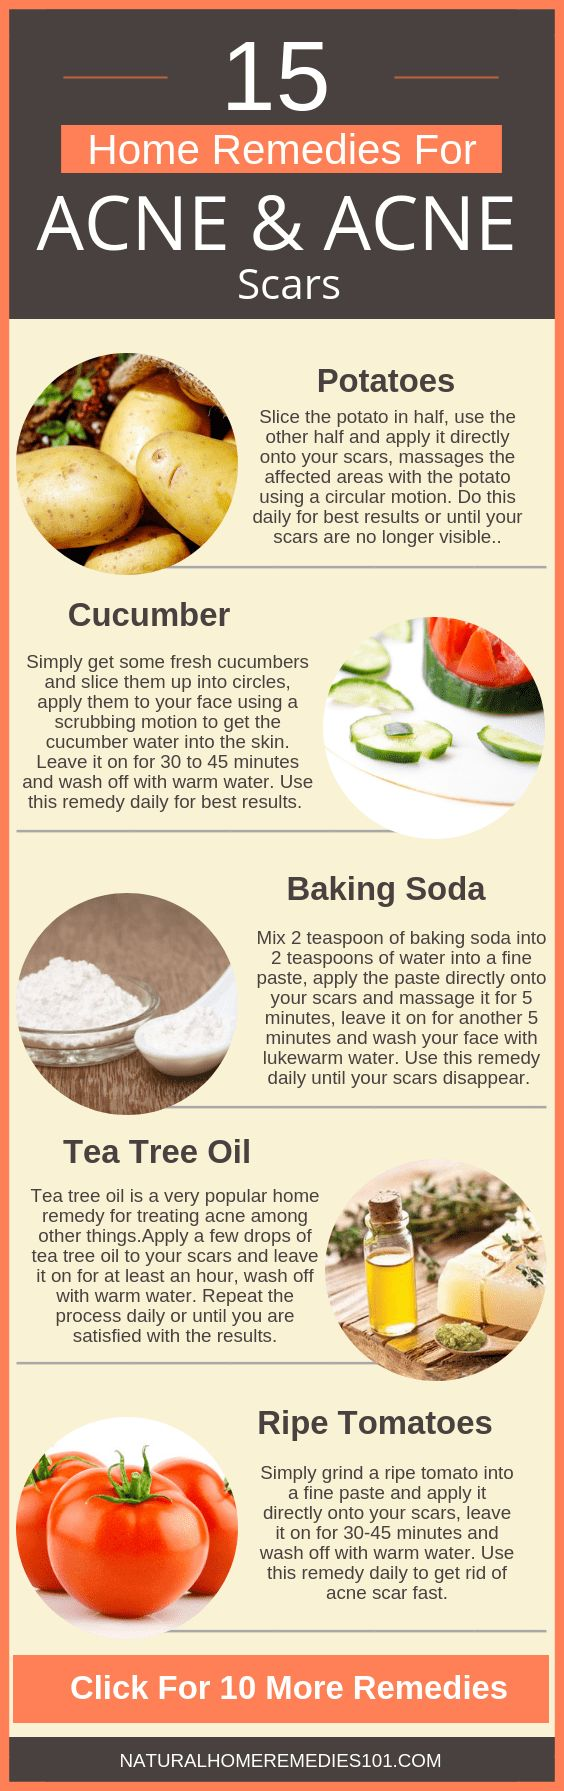 15 Natural Home Remedies For Acne Scars